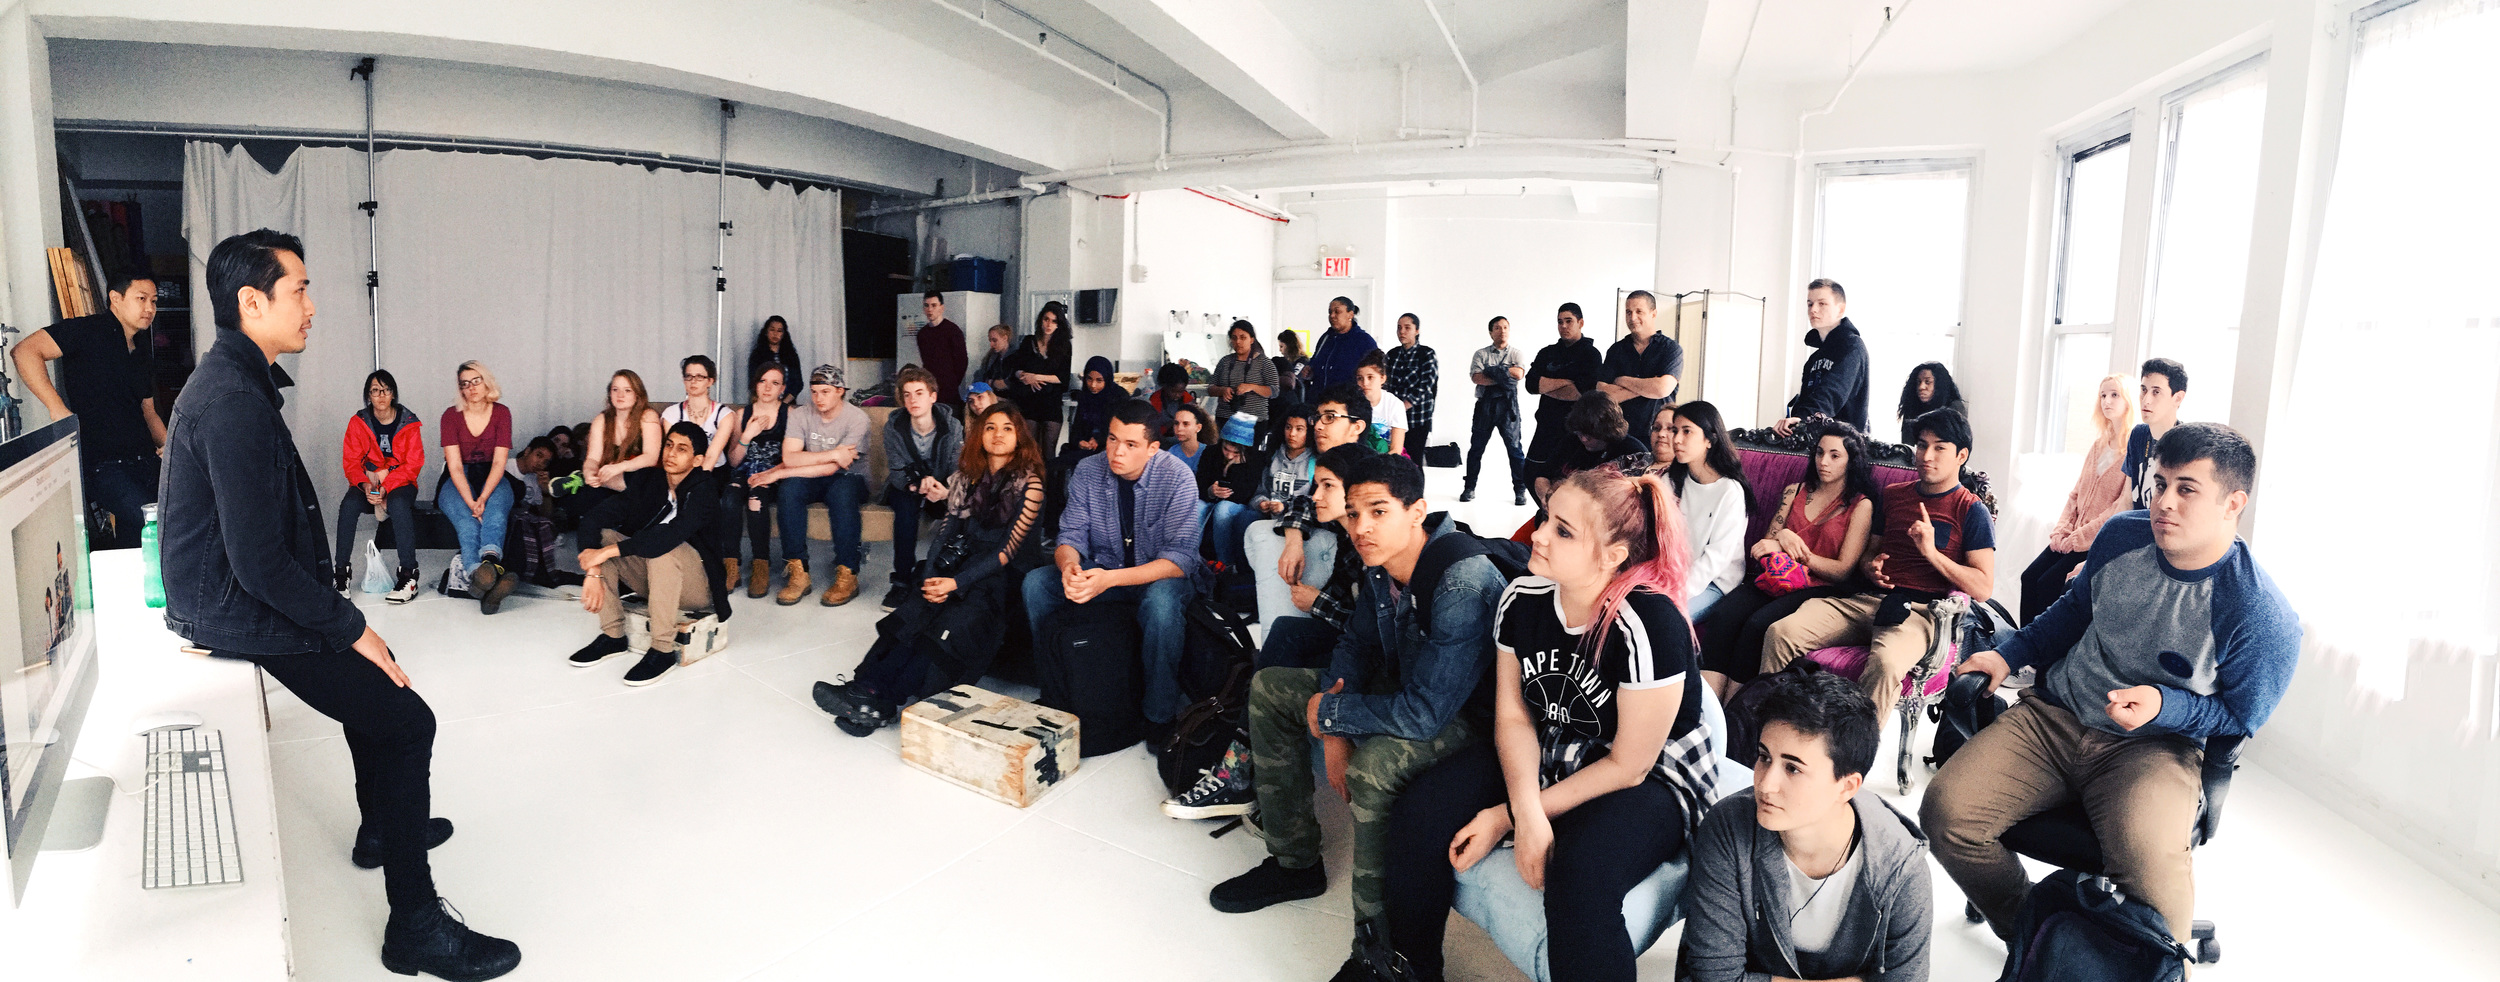 Fairfax Workshops Pano.jpg